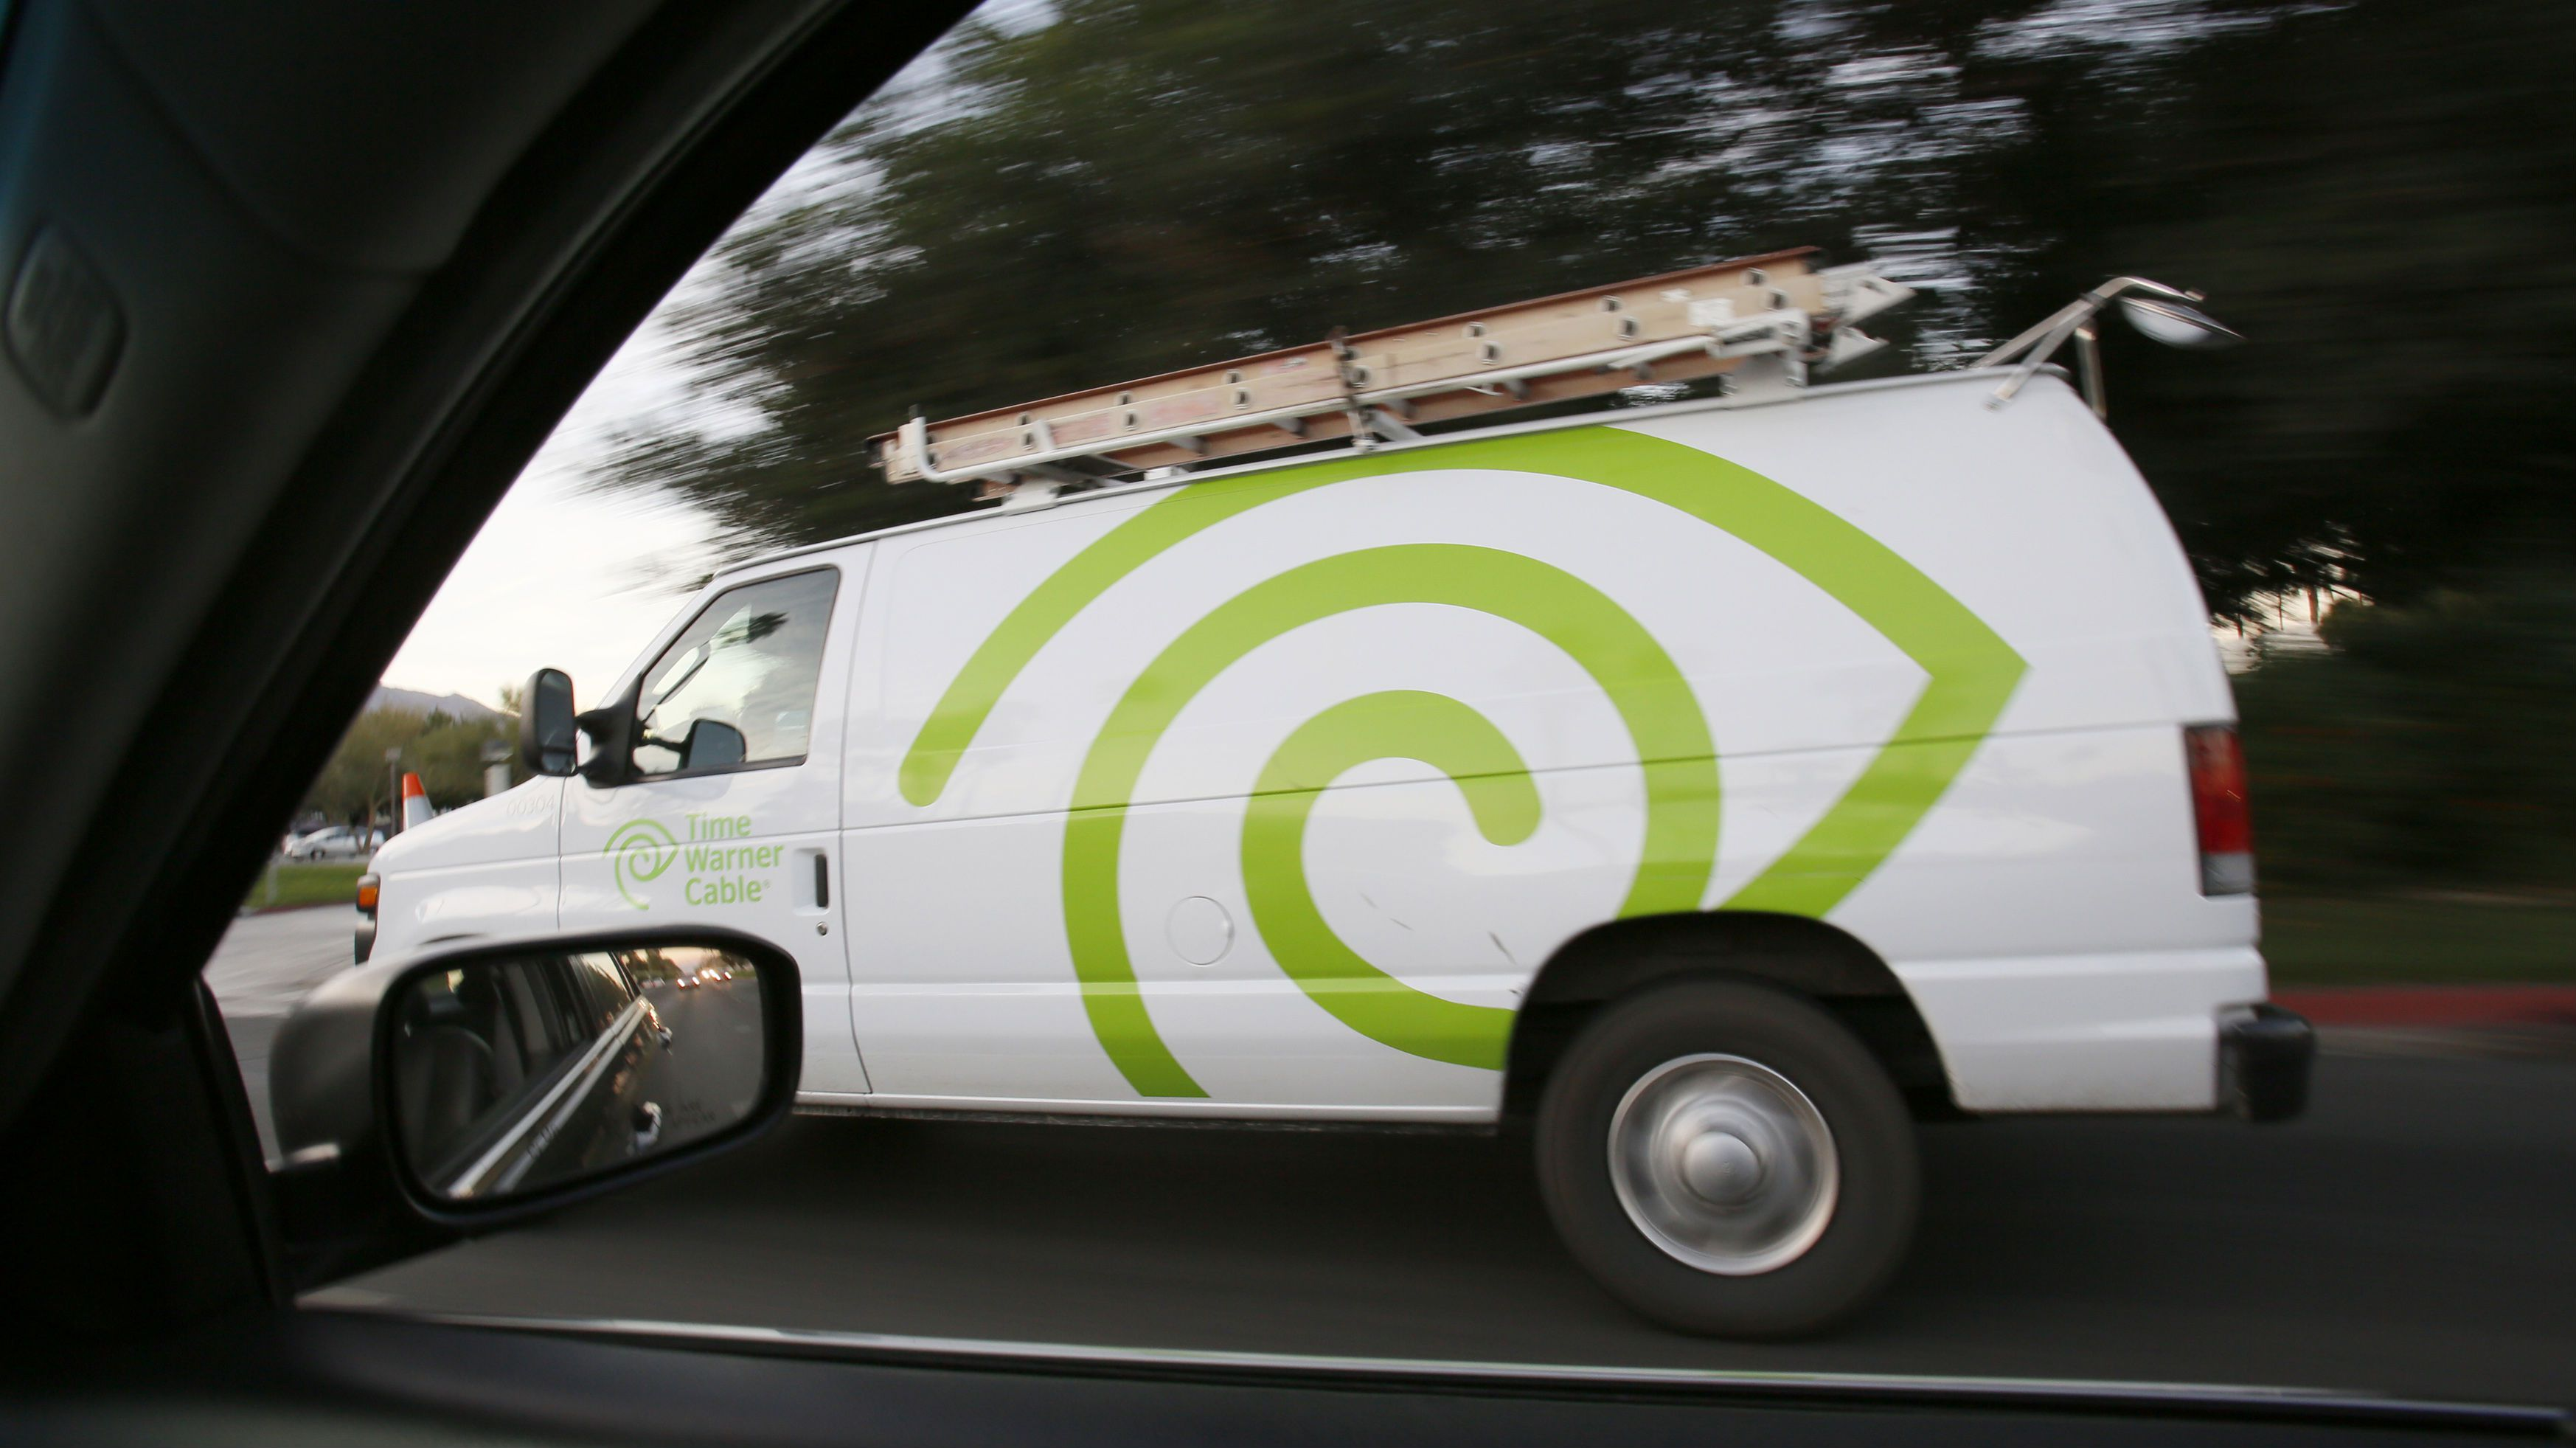 Time Warner Cable Outlet Installation: The cable guy7s secrets: Technician claiming to work for Time Warner rh:qz.com,Design